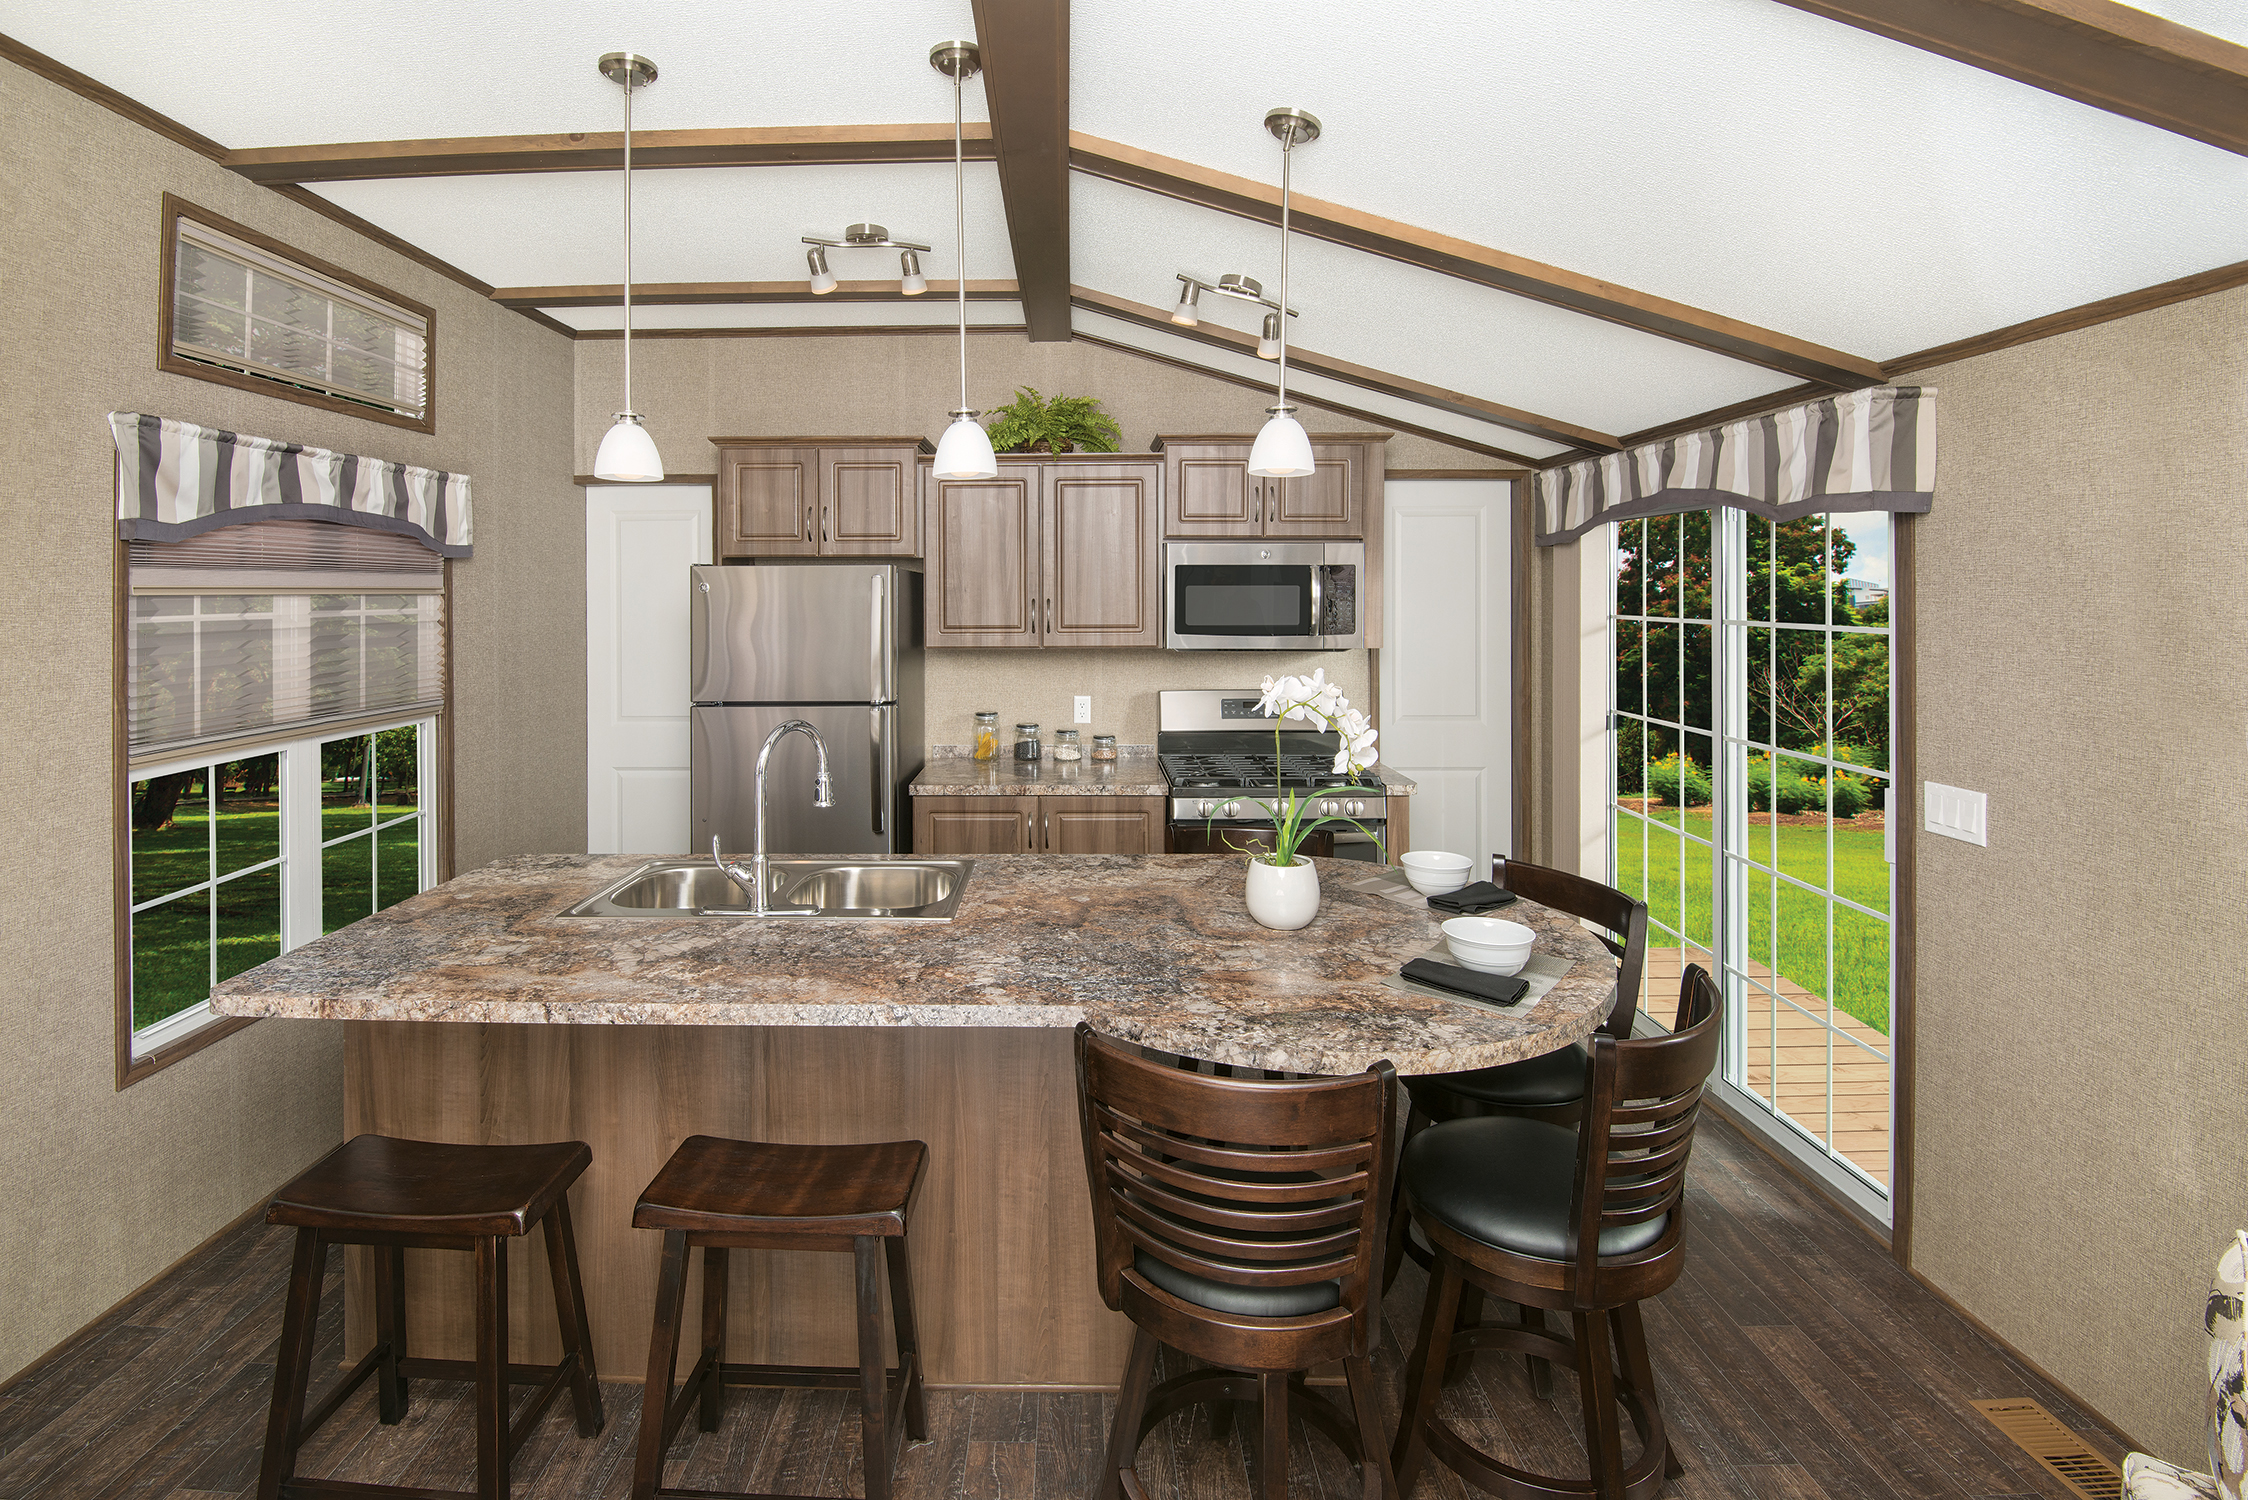 Northlander Industries: Bringing Luxury to the Canadian Park Model on mexican mobile home, kentuckian mobile home, graham mobile home,